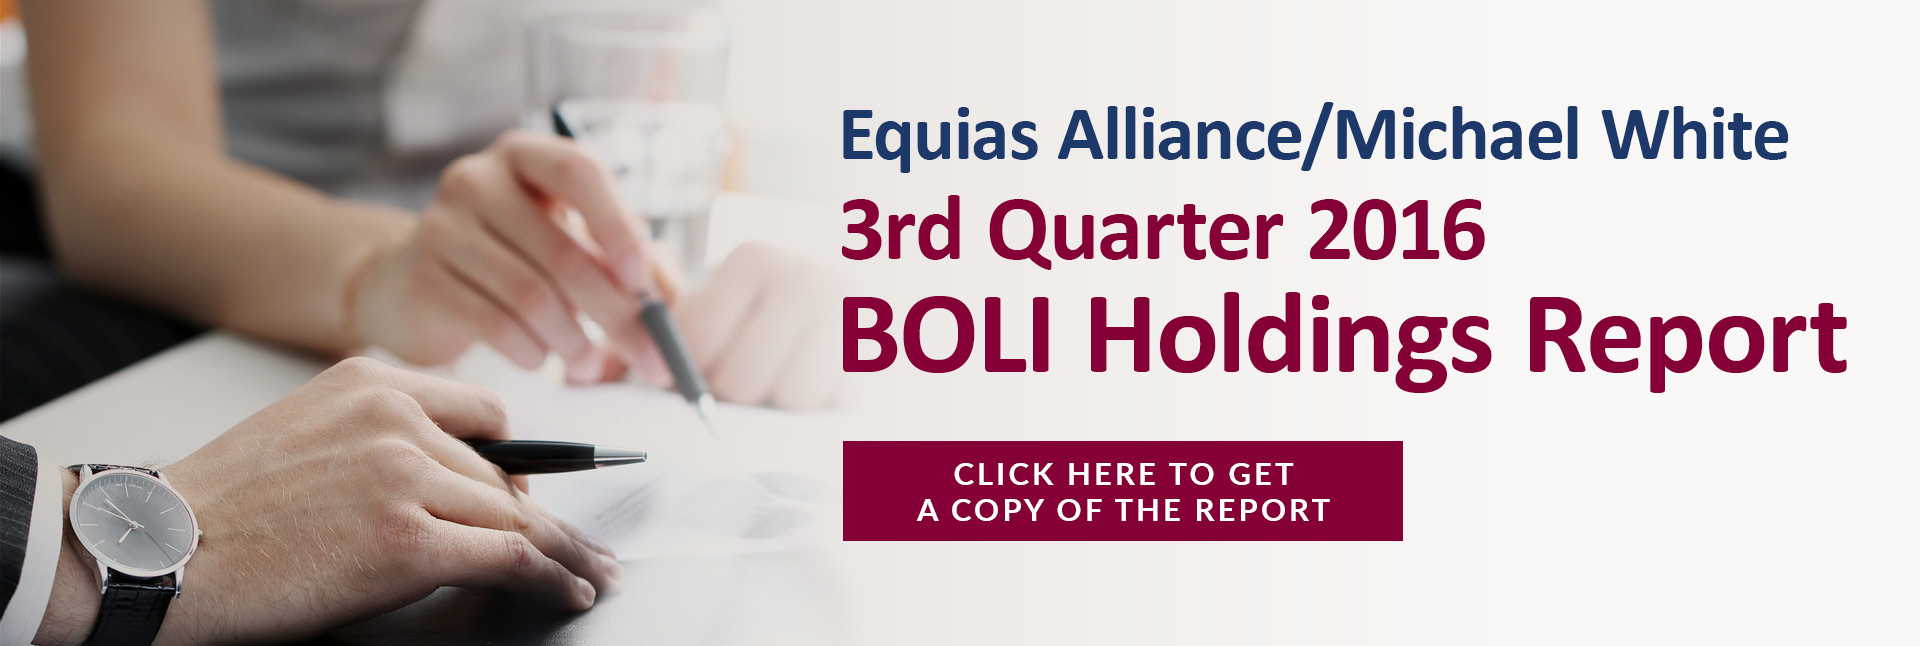 Equias Alliance/Michael White 3rd Quarter 2016 BOLI Holdings Report - Click Here to Get a Copy of the Report